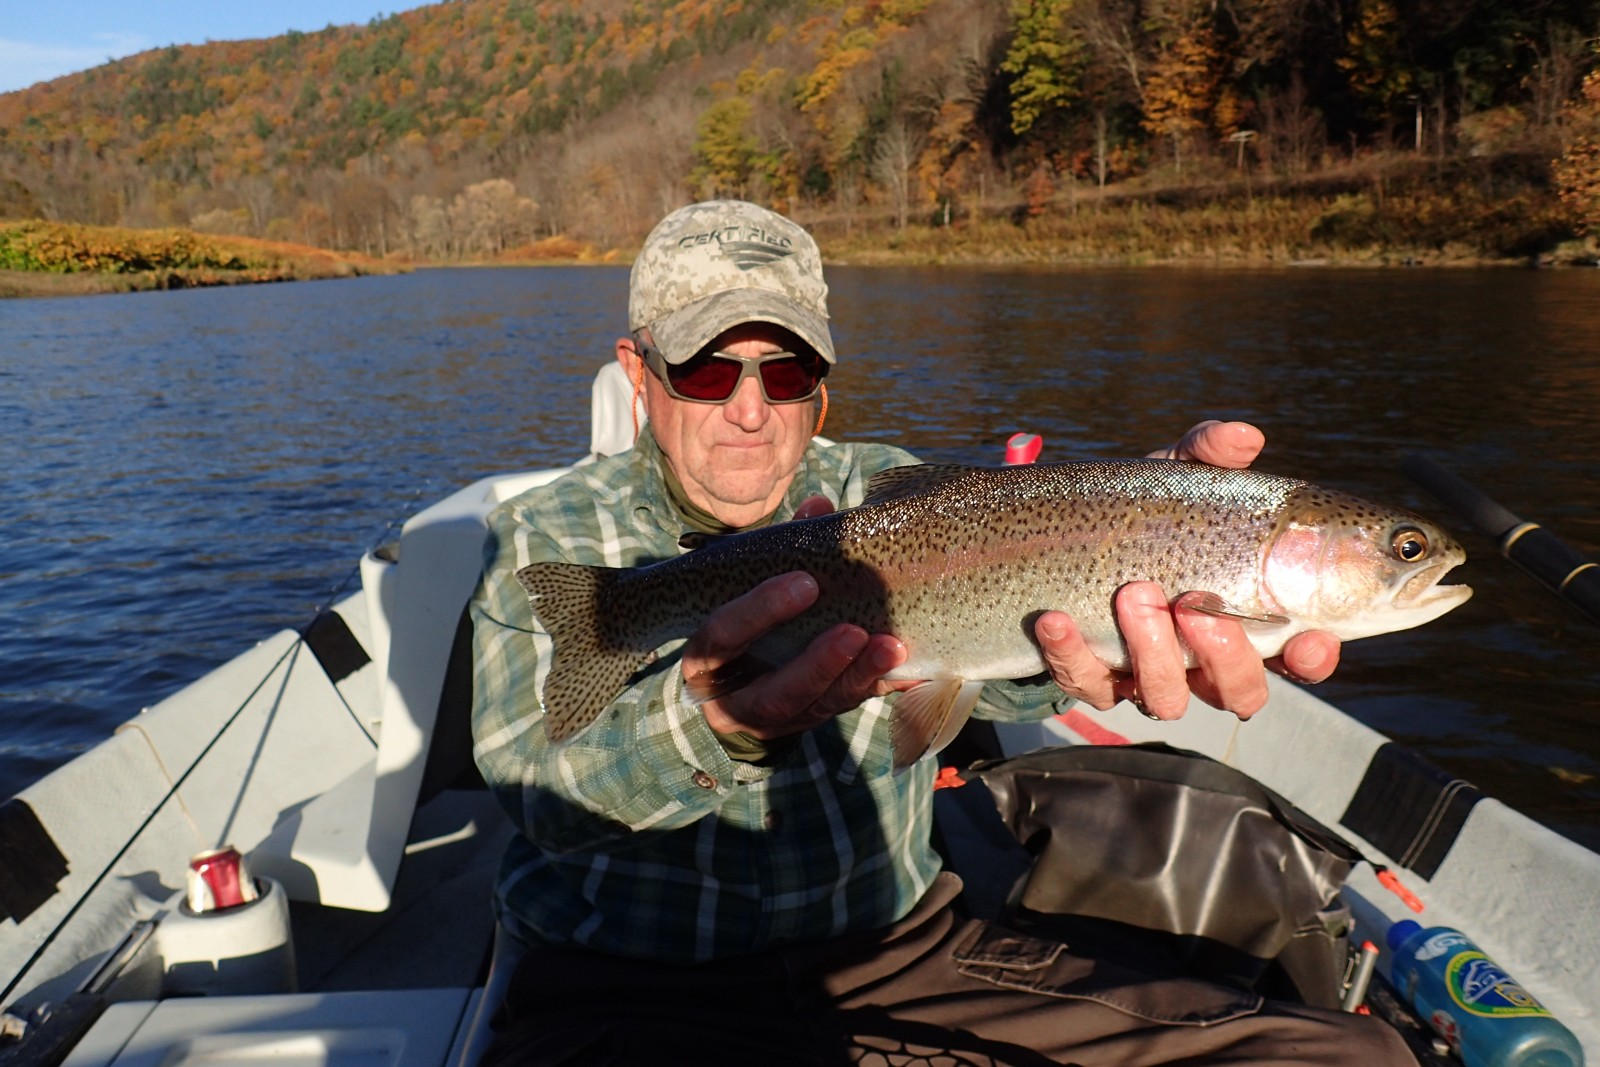 guided fly fishing float trips on the upper delaware river for wild rainbow trout with filingo fly fishing